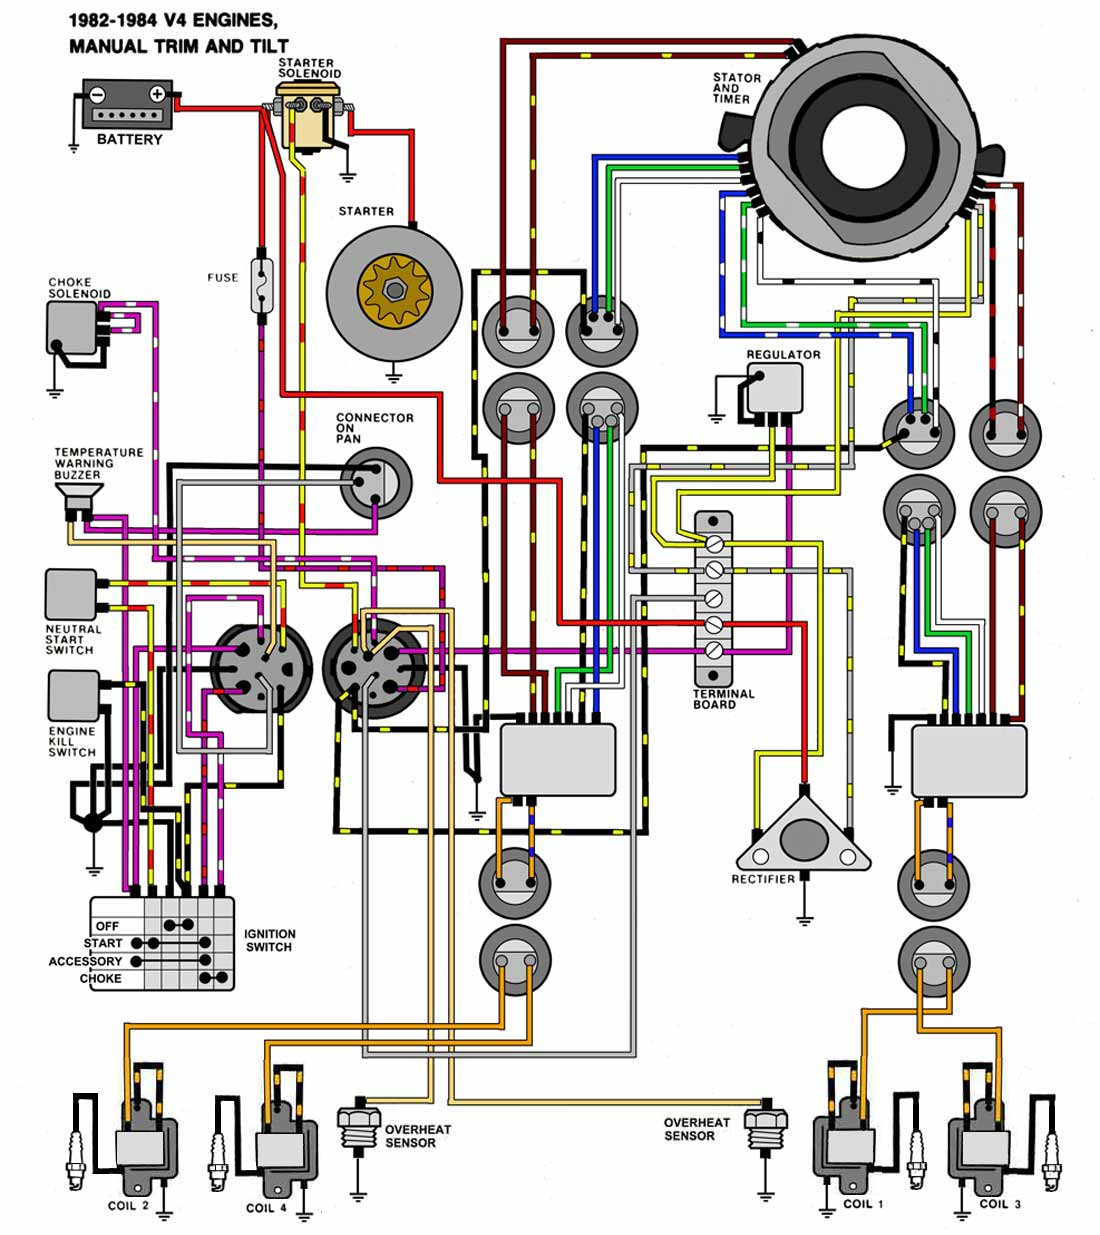 82_84_V4_NOTNT evinrude ignition wiring diagram evinrude 40 hp outboard diagrams 35 Evinrude Wiring Diagram at fashall.co